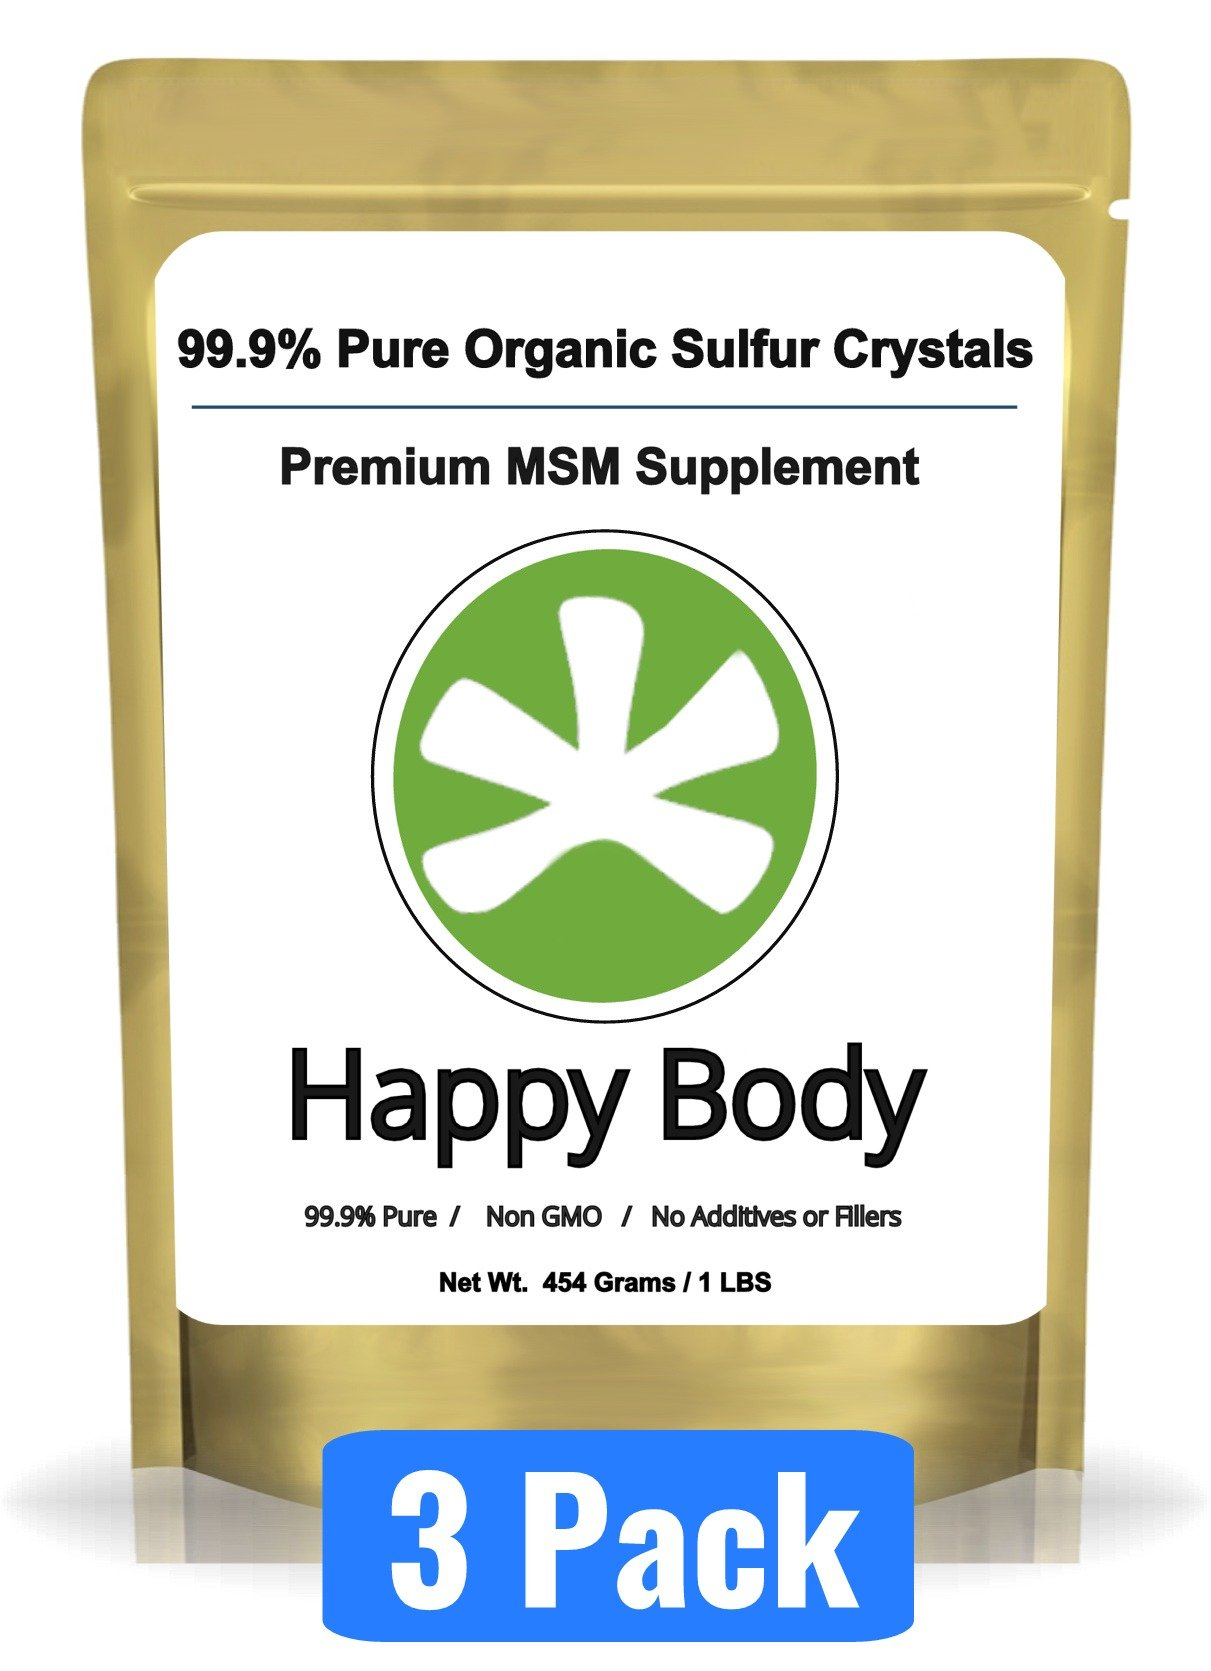 Organic Sulfur Crystals - 99% Pure MSM Crystals, Premium MSM Supplement - 3 x 1 LBS Pack